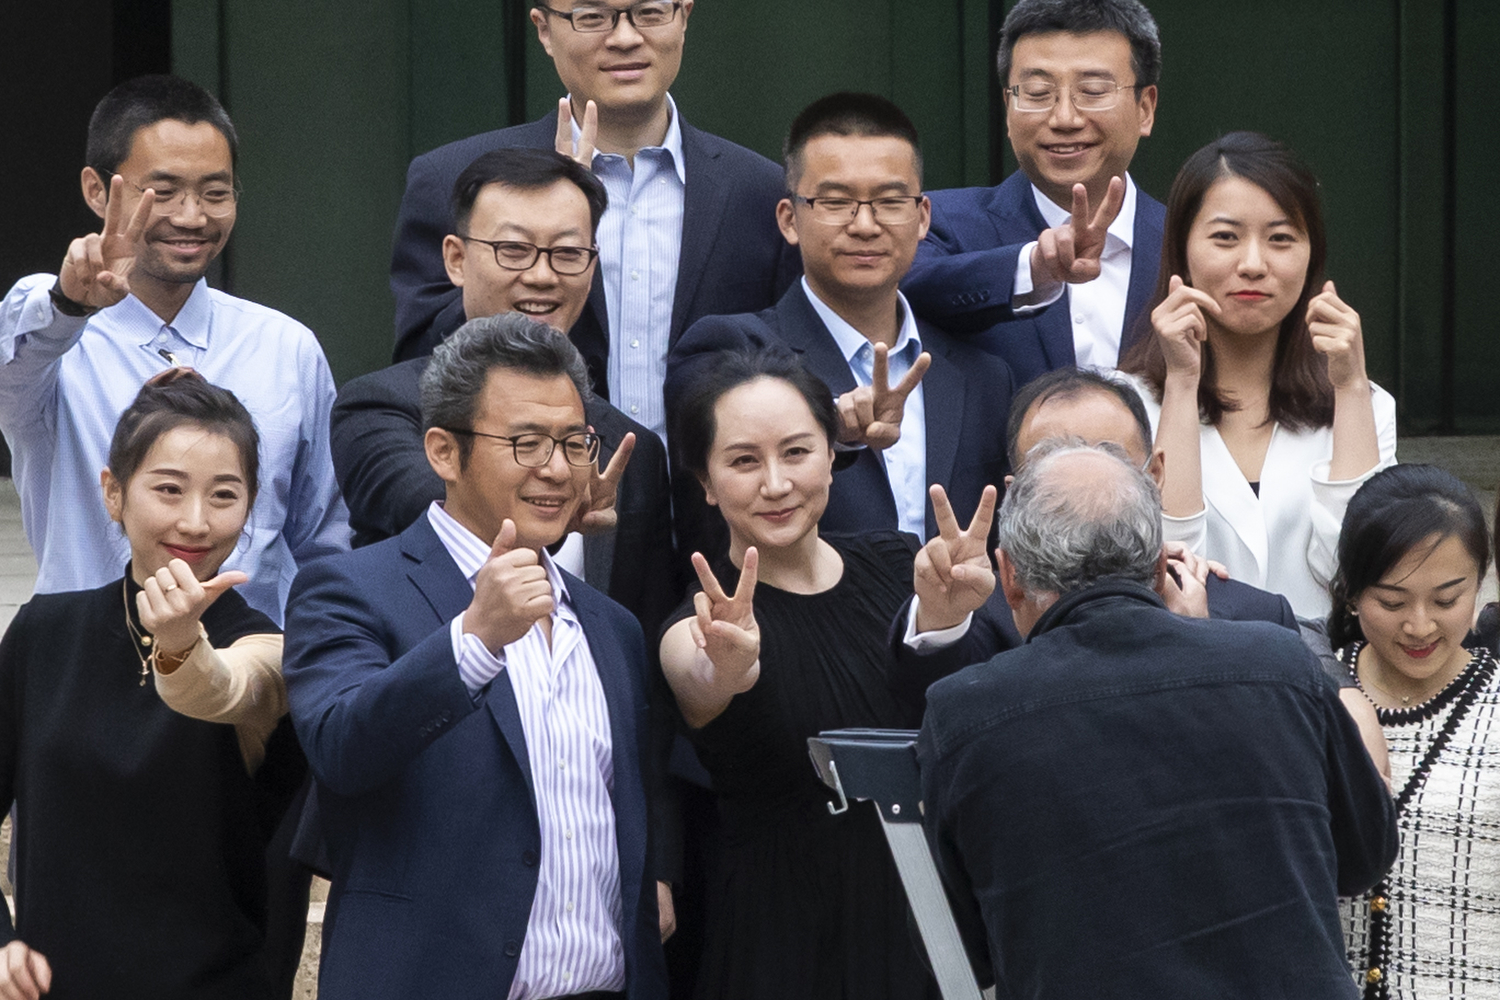 Huawei CFO Meng Wanzhou poses for pictures with friends and supporters on the steps of the B.C. Supreme Court in Vancouver on May 23, 2020. (Ben Nelms/CBC Vancouver)